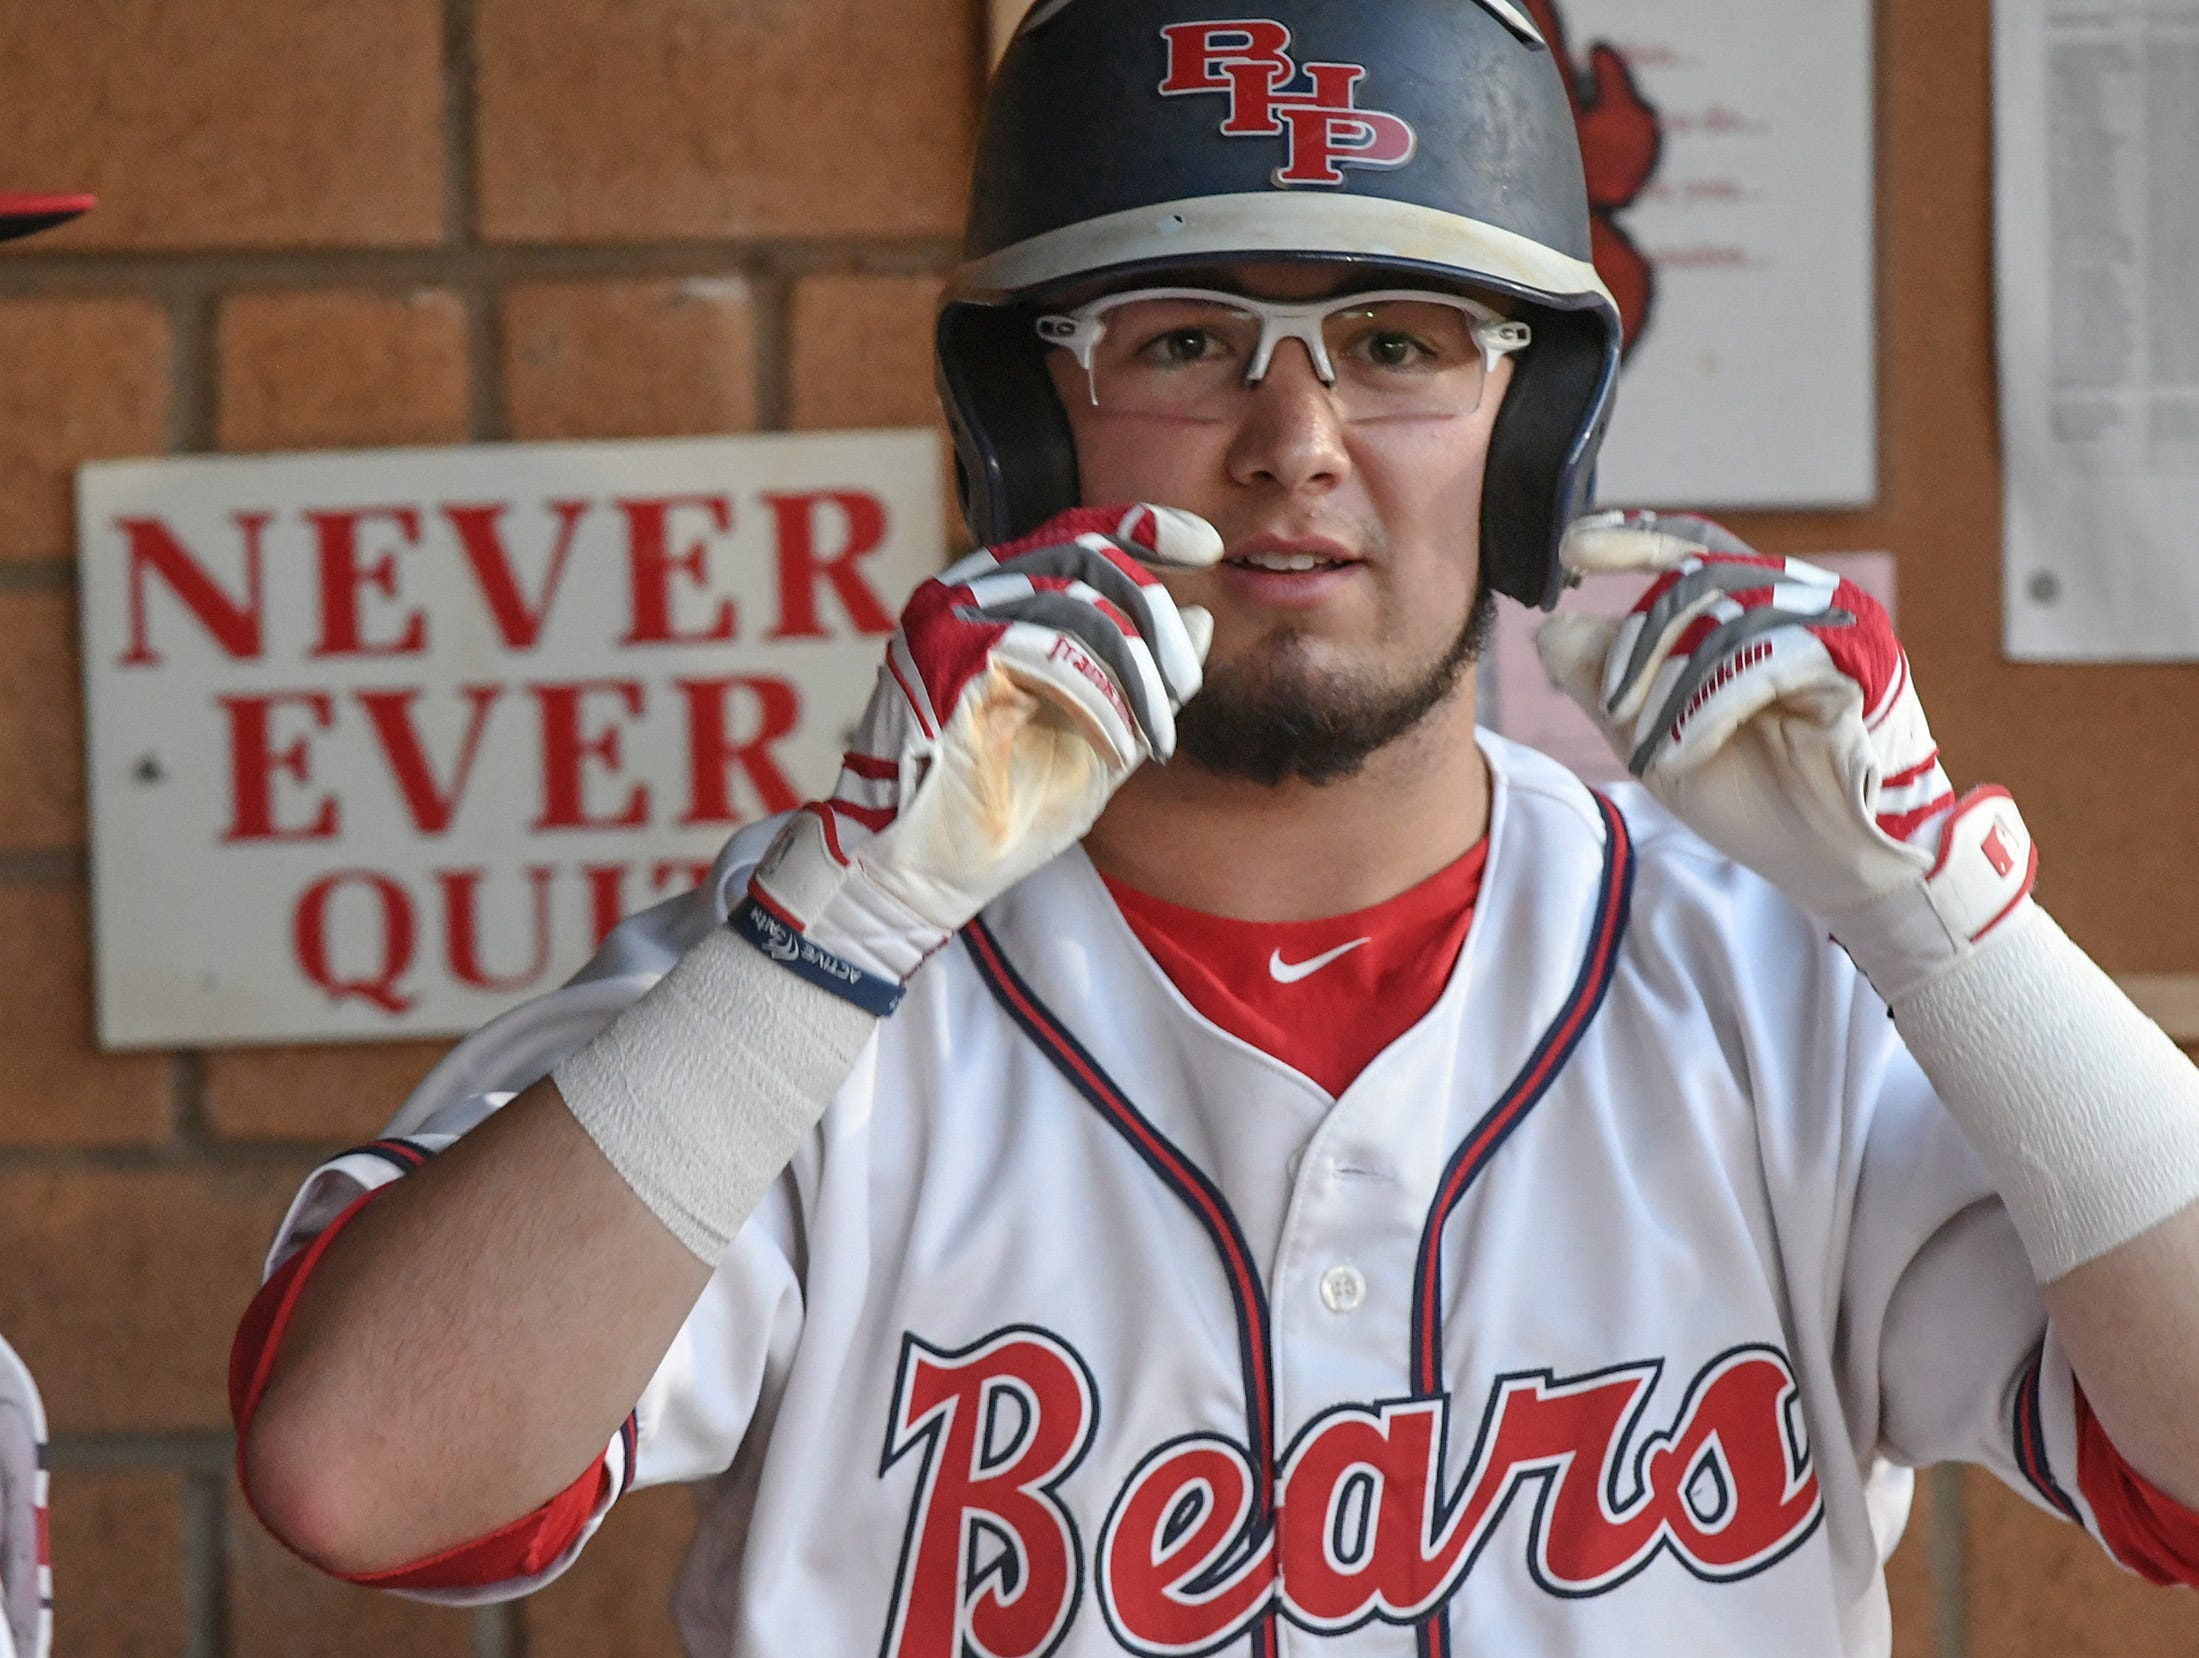 Belton-Honea Path senior Tyliss Roper (10) adjusts his glasses in the dugout before hitting against Wren during the top of the fifth inning at Belton-Honea Path High School in Honea Path Wednesday, April 10, 2019.